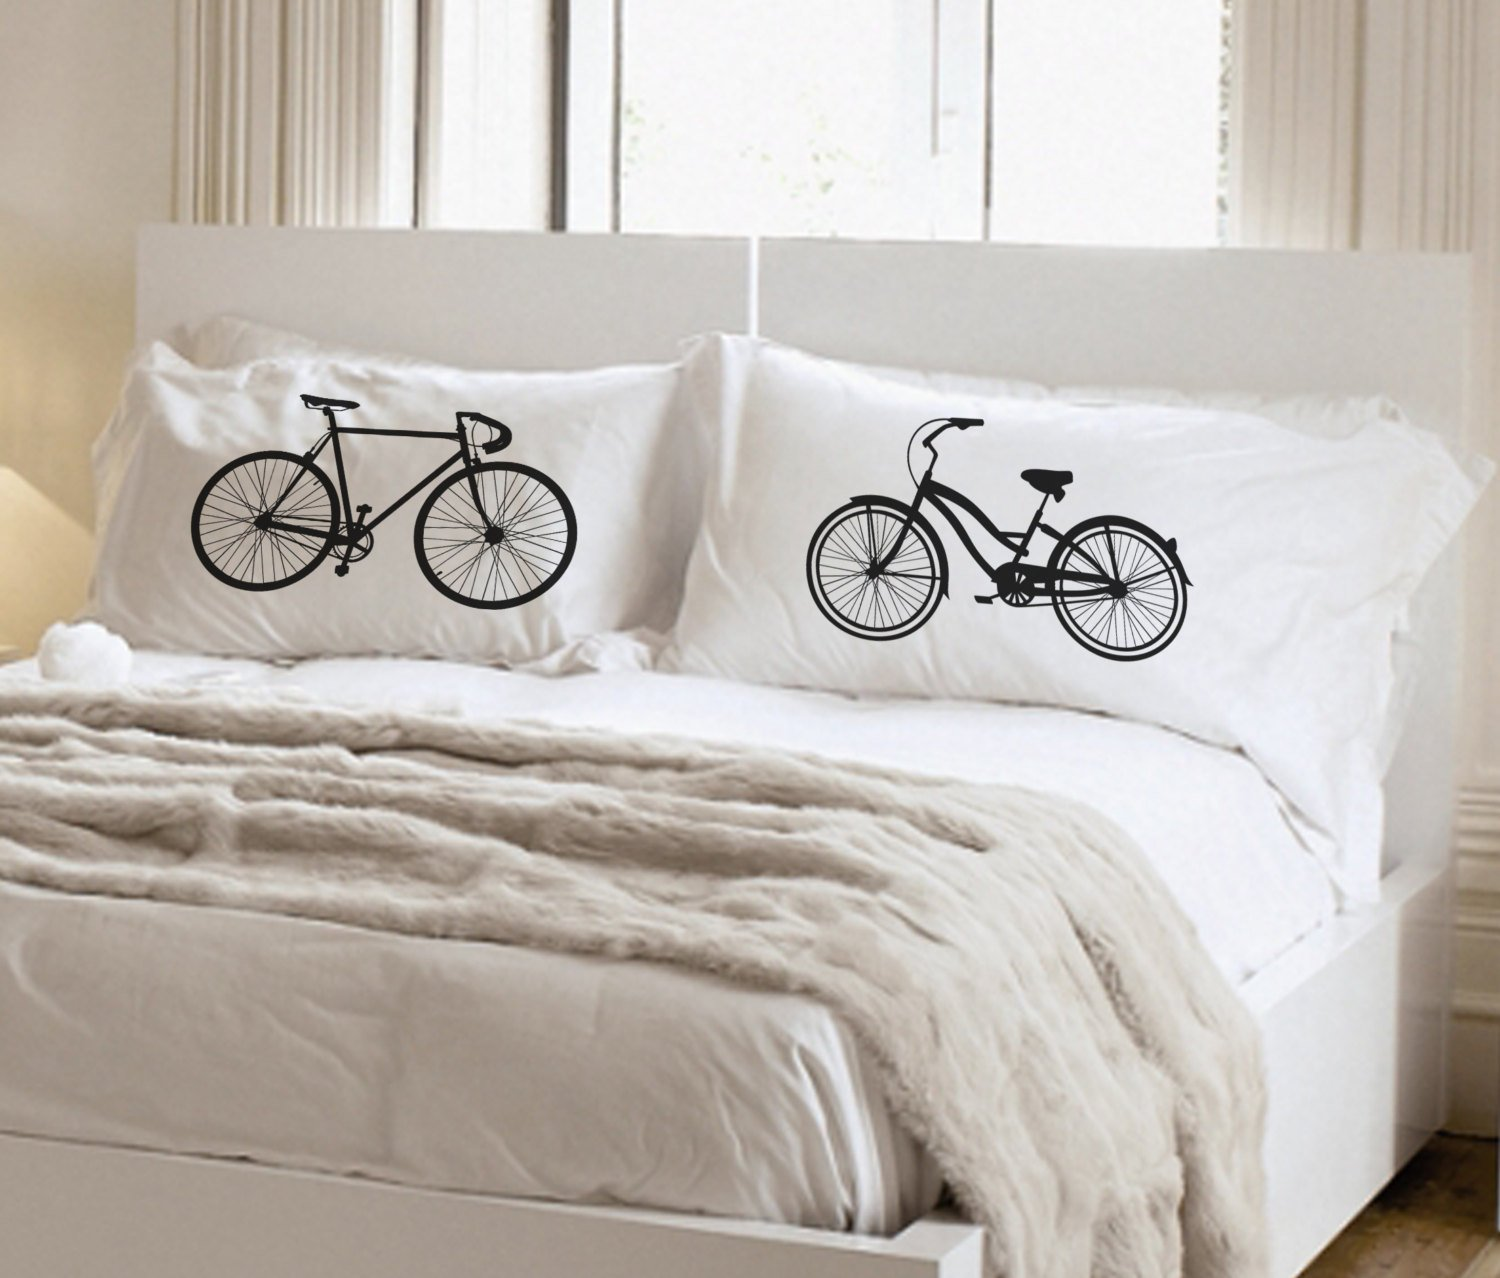 Amazon.com: Bike Themed, Bicycle, Gift for Bike Riders, Pillowcase ...